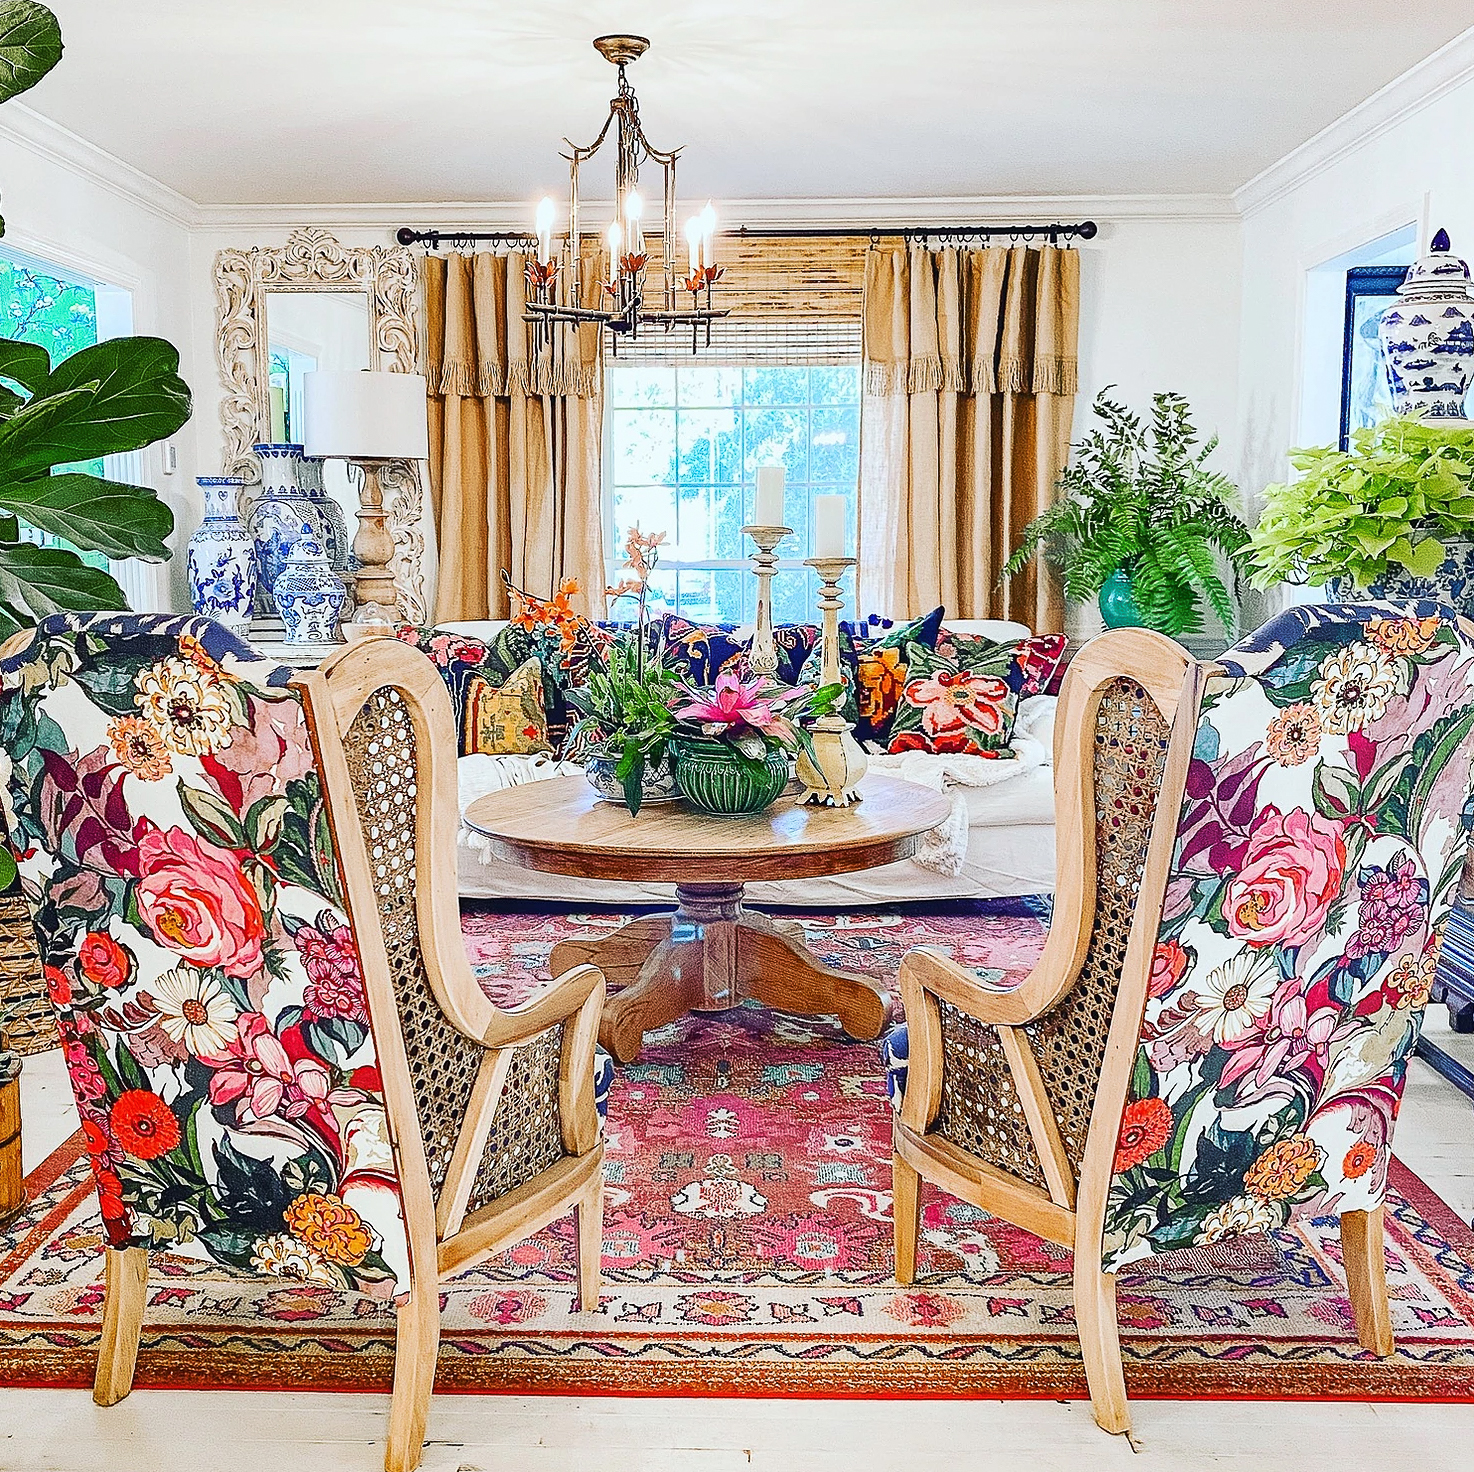 Colorful living room with thrifted cane chairs reupholstered in a fun and whimsical floral fabric